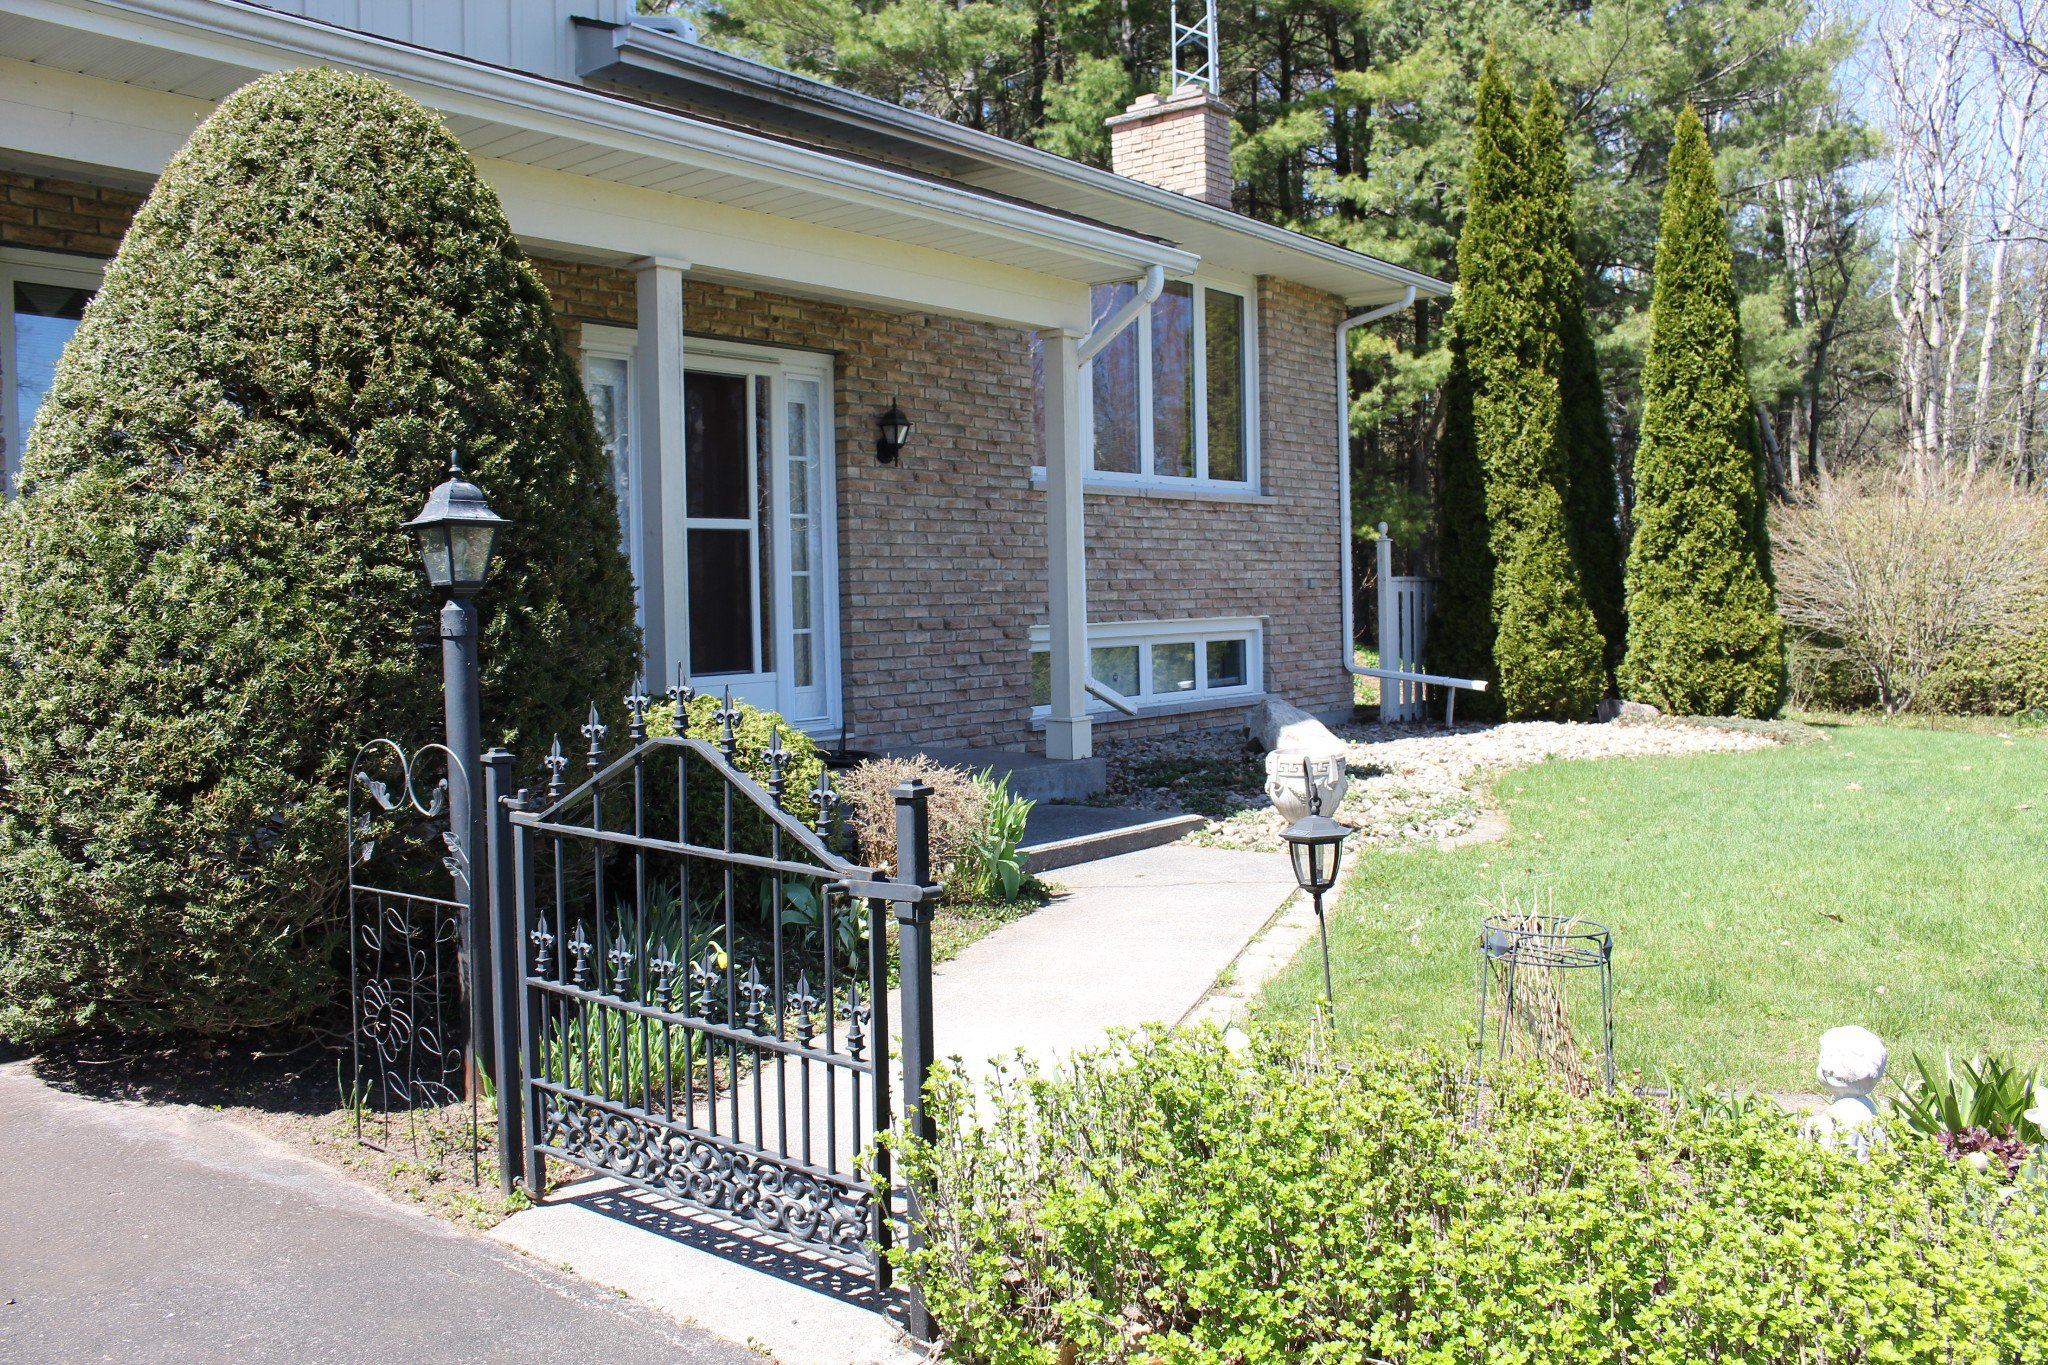 Photo 3: Photos: 5144 Oak Hills Road in Bewdley: Residential Detached for sale : MLS®# 125303